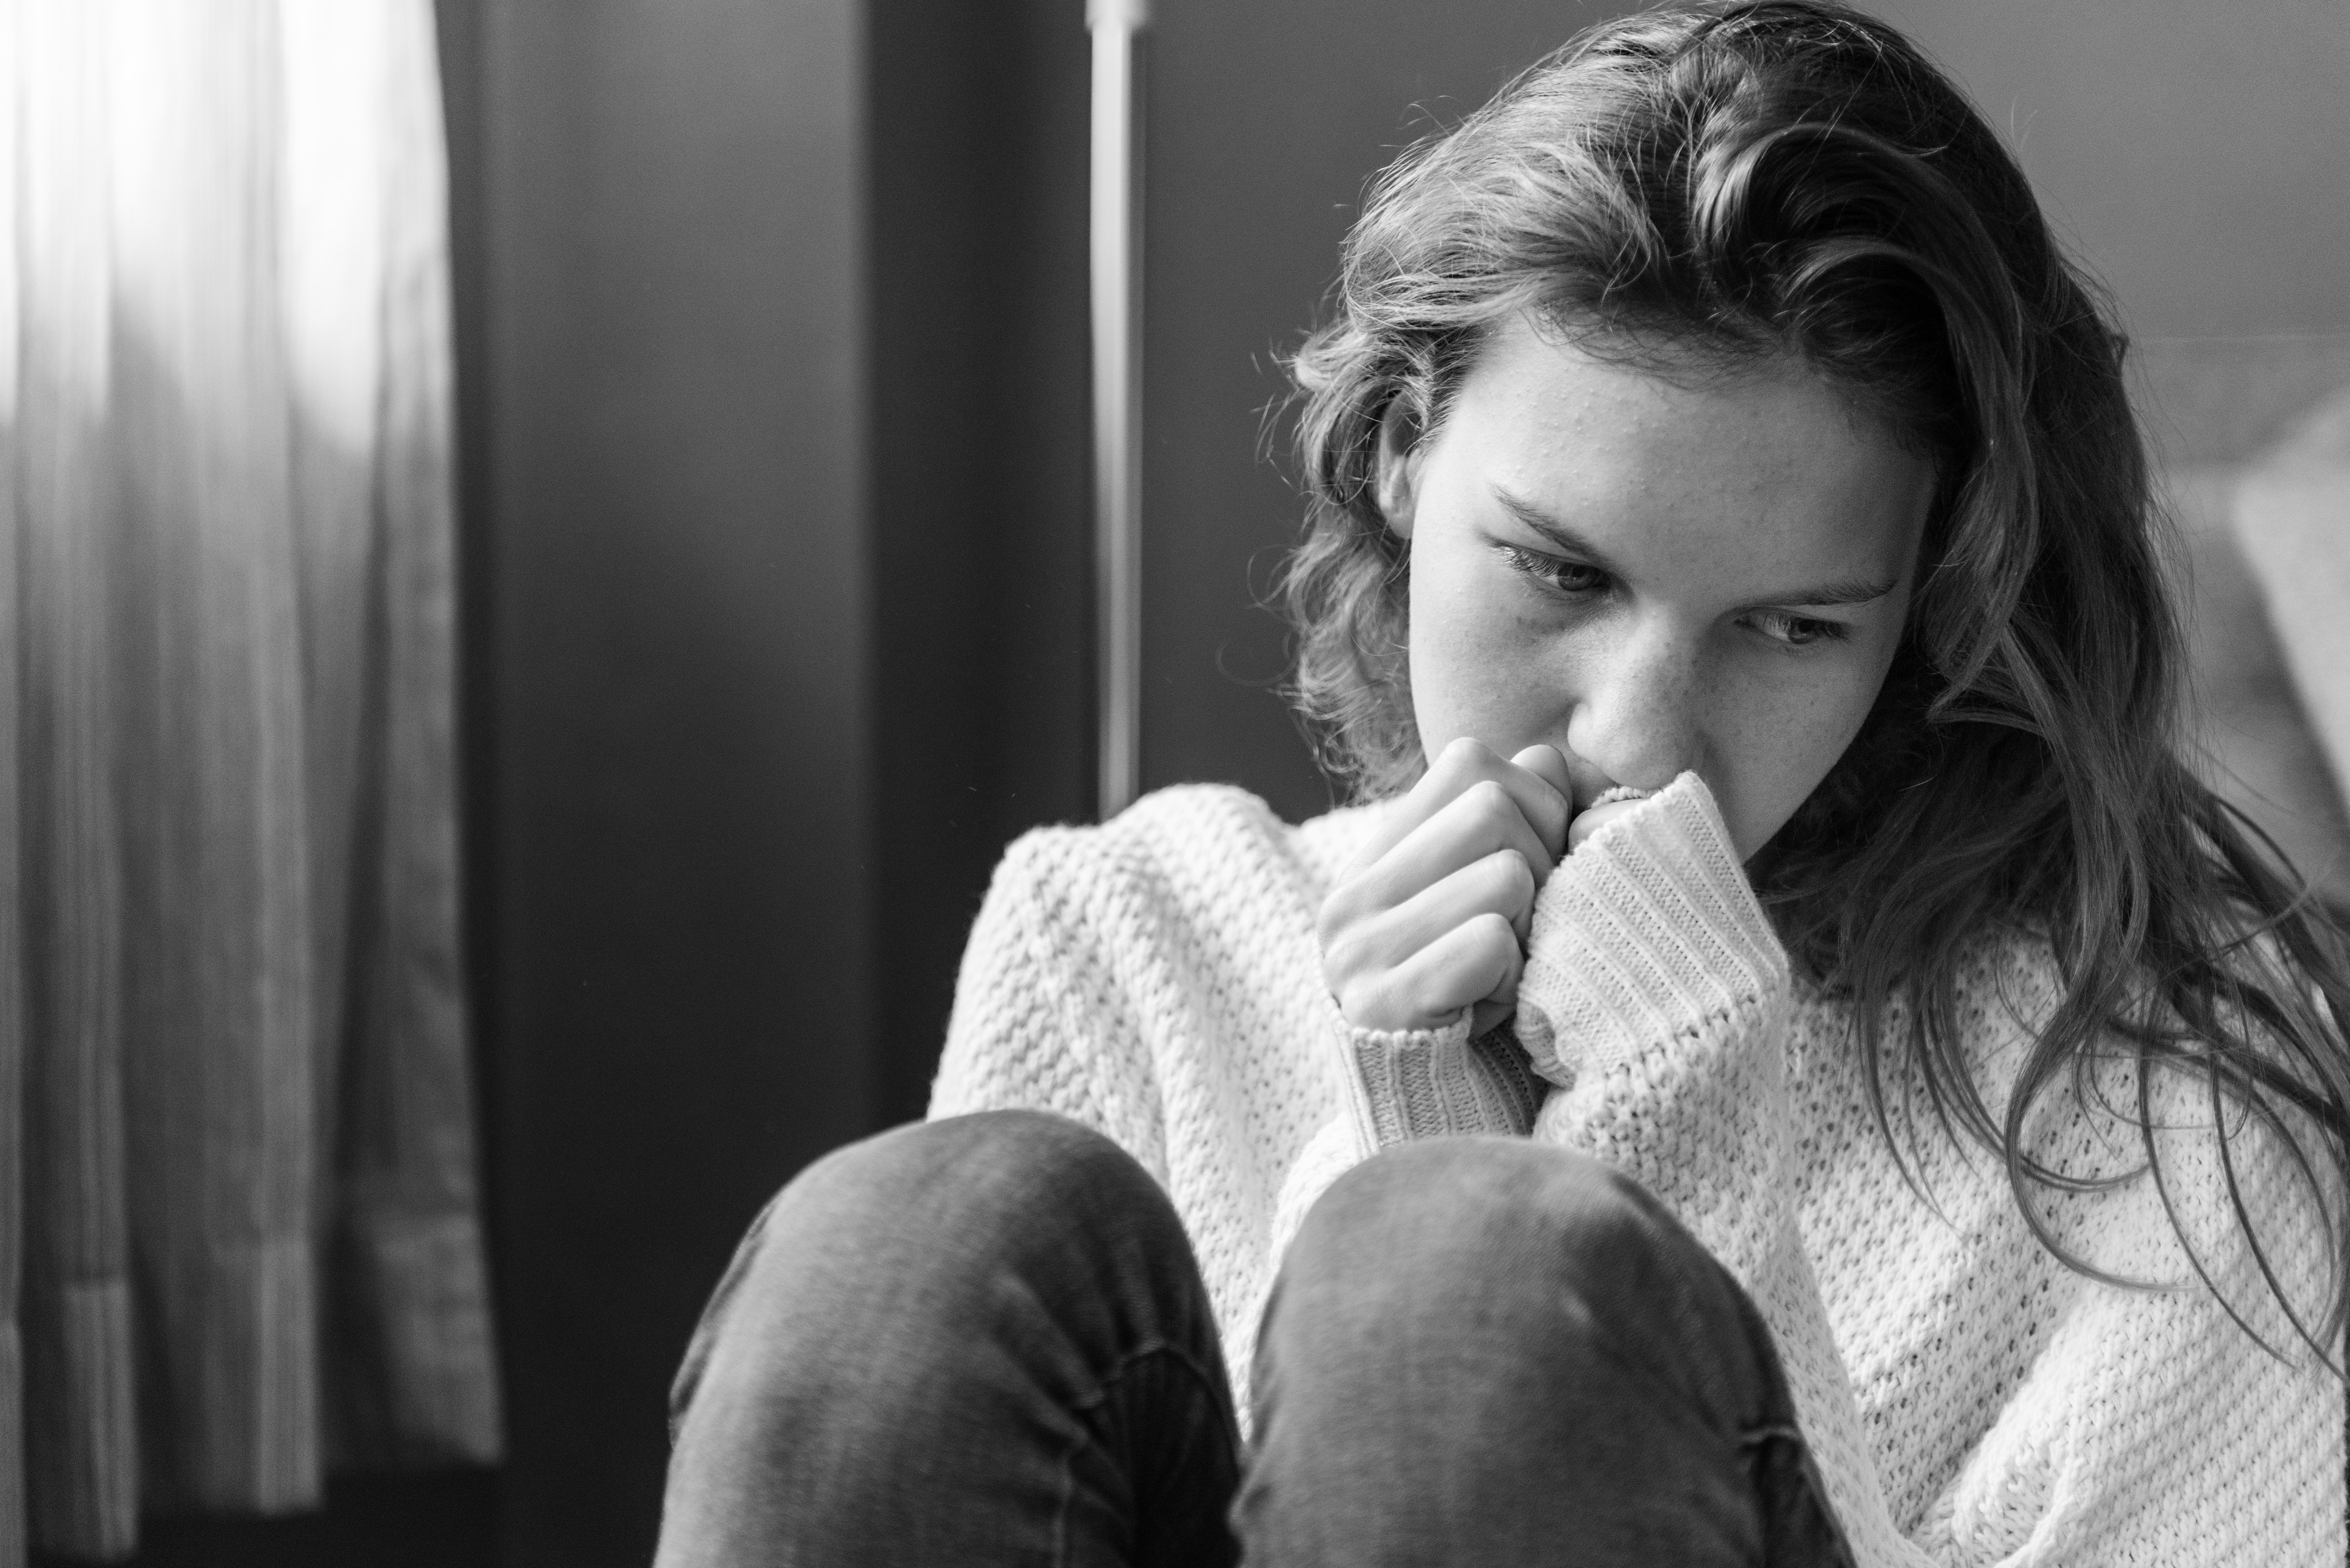 Early Pregnancy Loss: A Patient-Centered Care Model